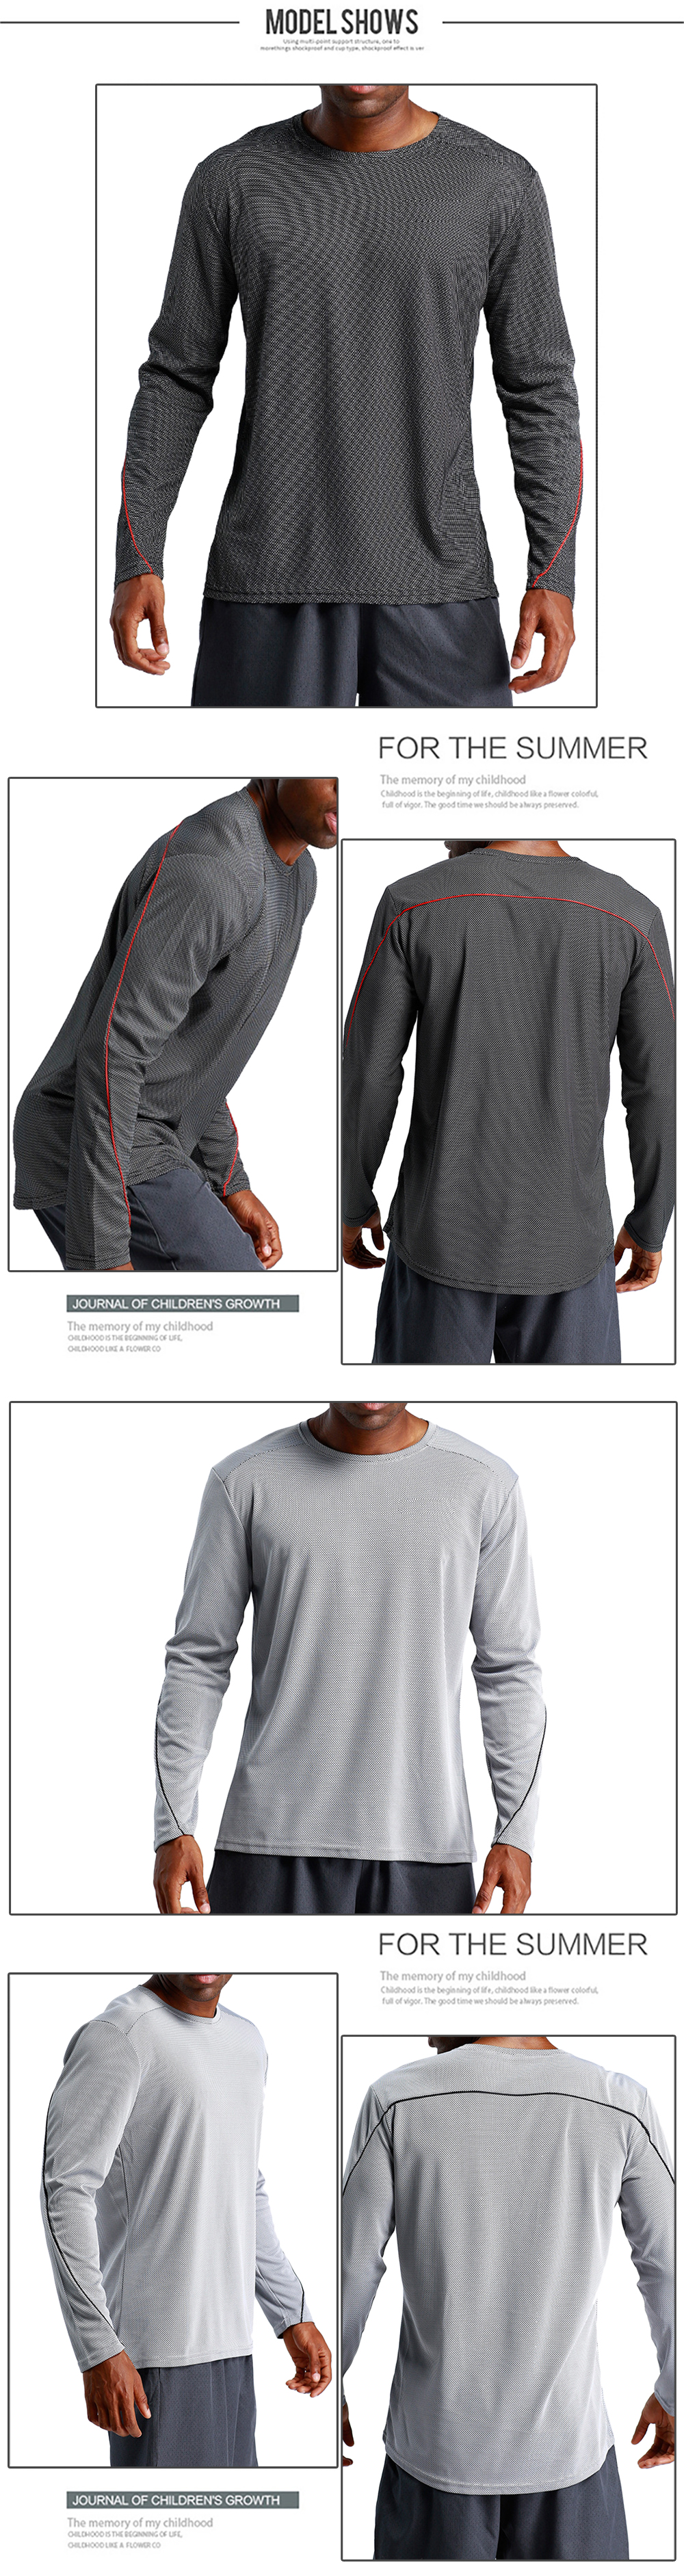 Fitness Men Loose Breathable Leisure Sports Long Sleeve Shirt T - Shirt- Jet Black L